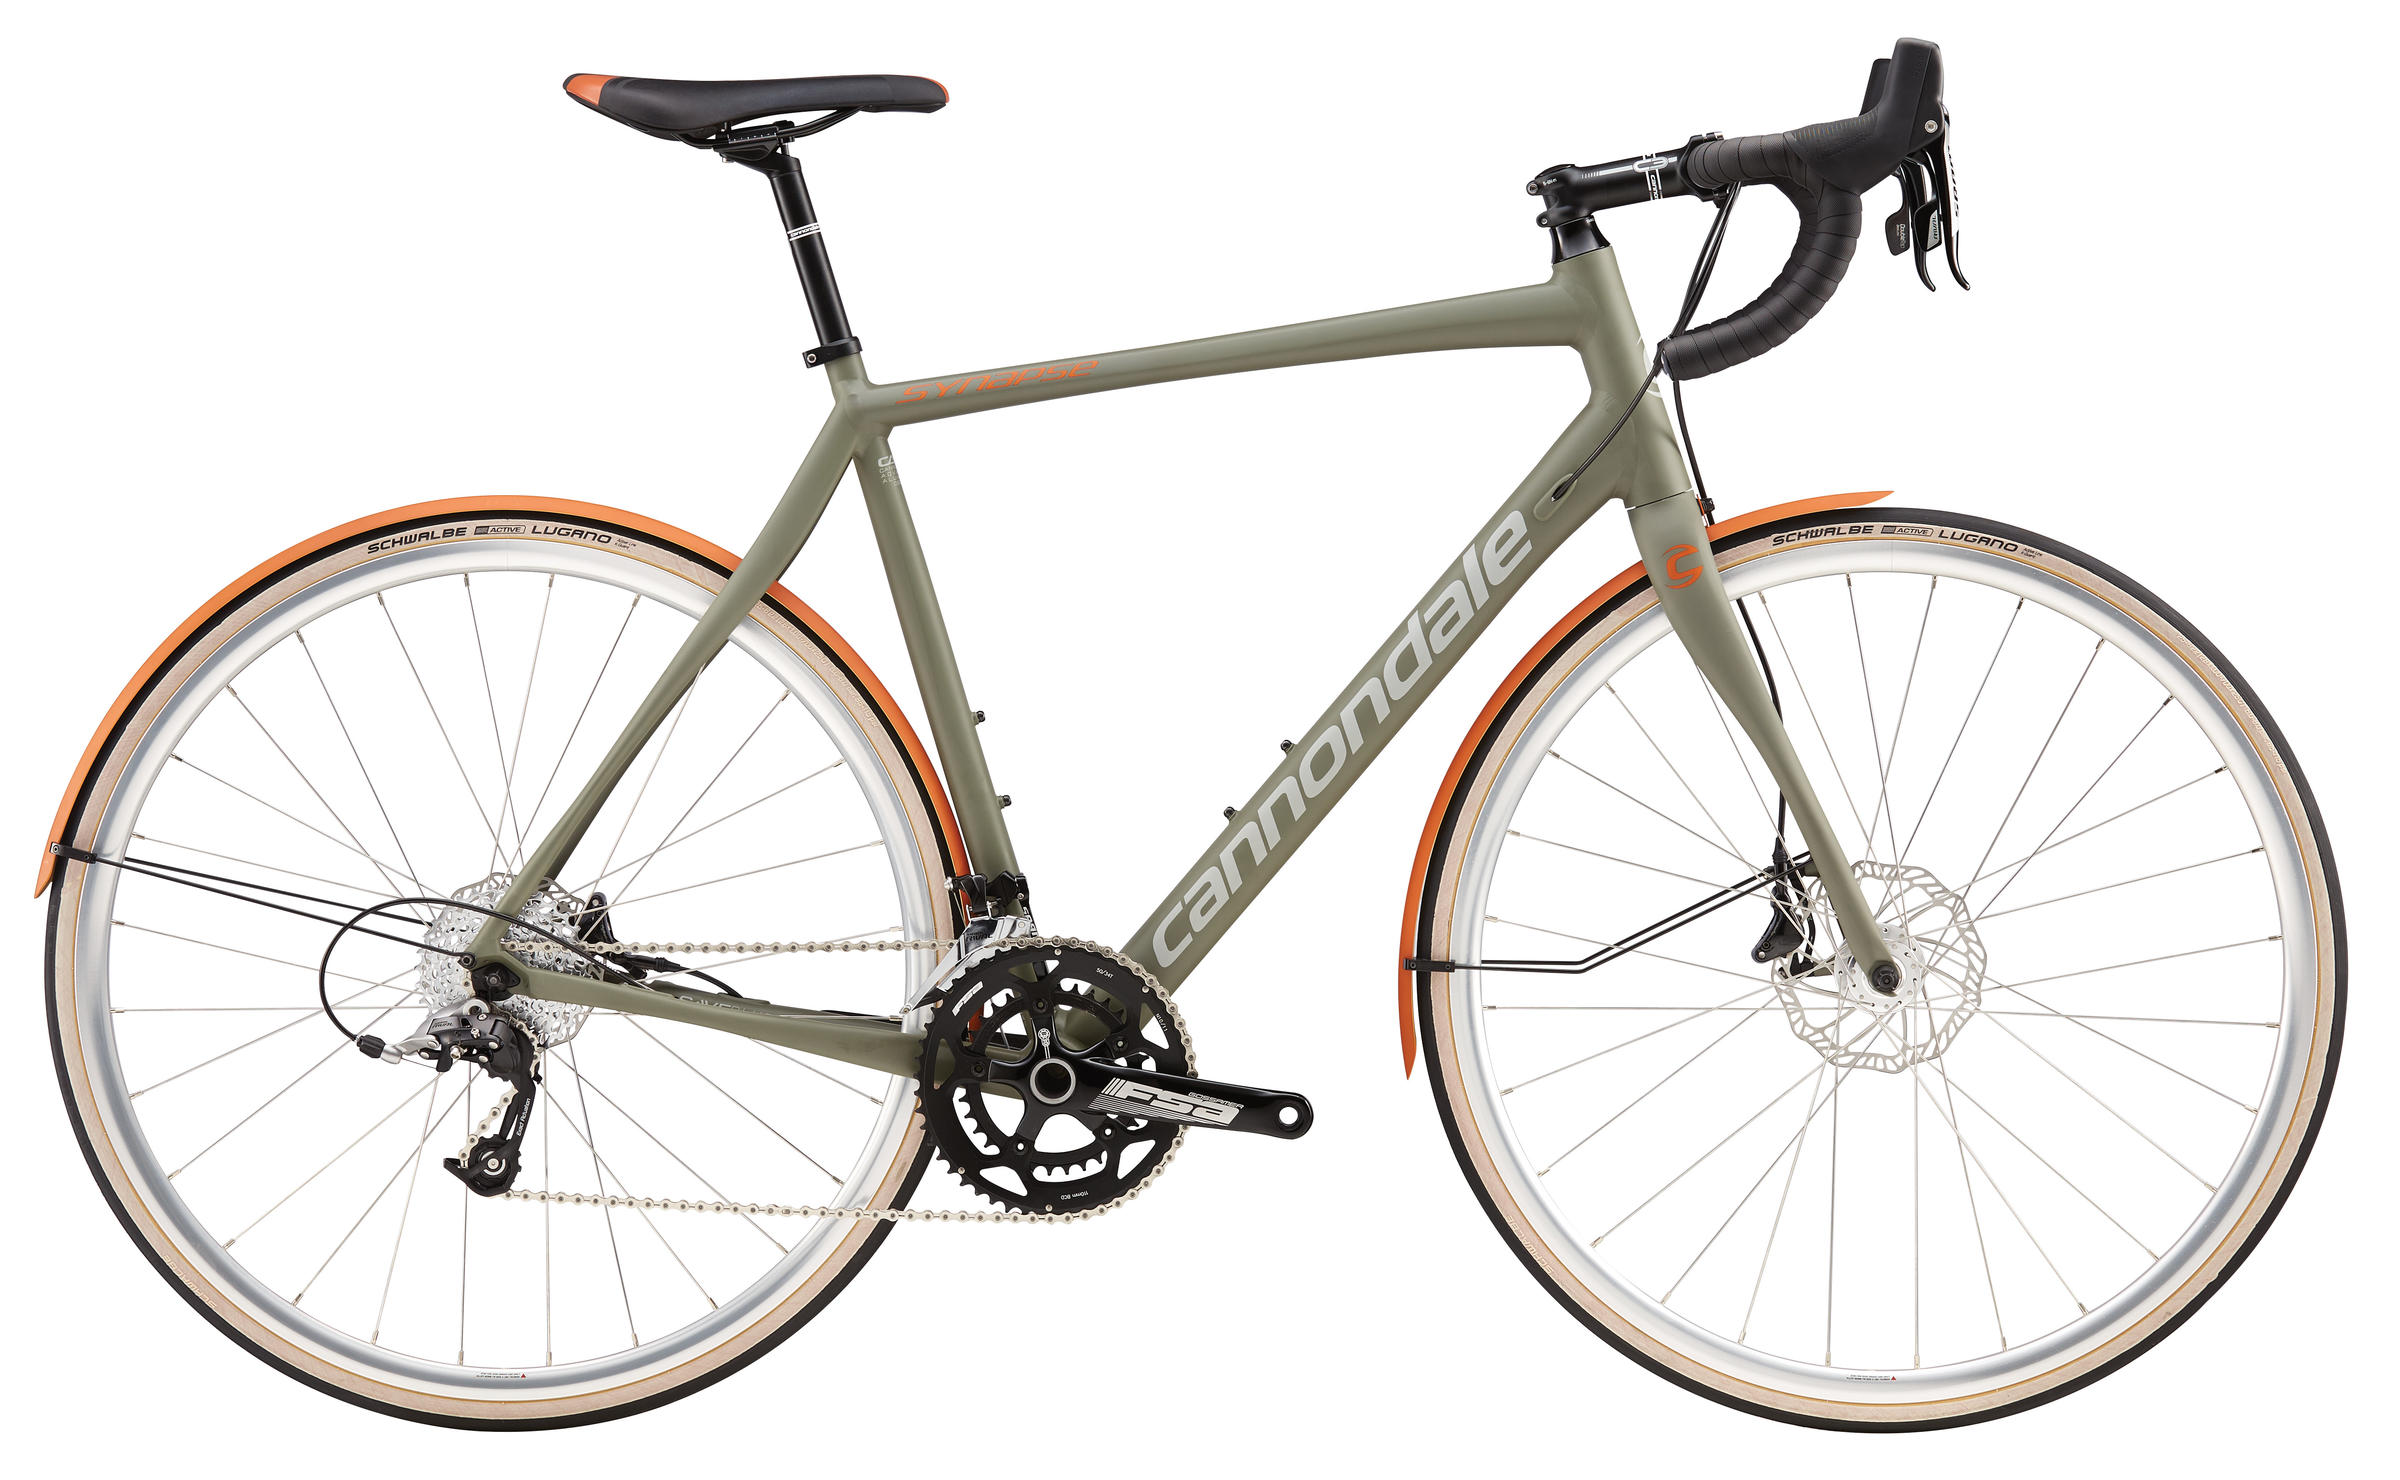 9367d4e5ab8 Cannondale Synapse Disc Adventure - Brickwell Cycling & Multisports